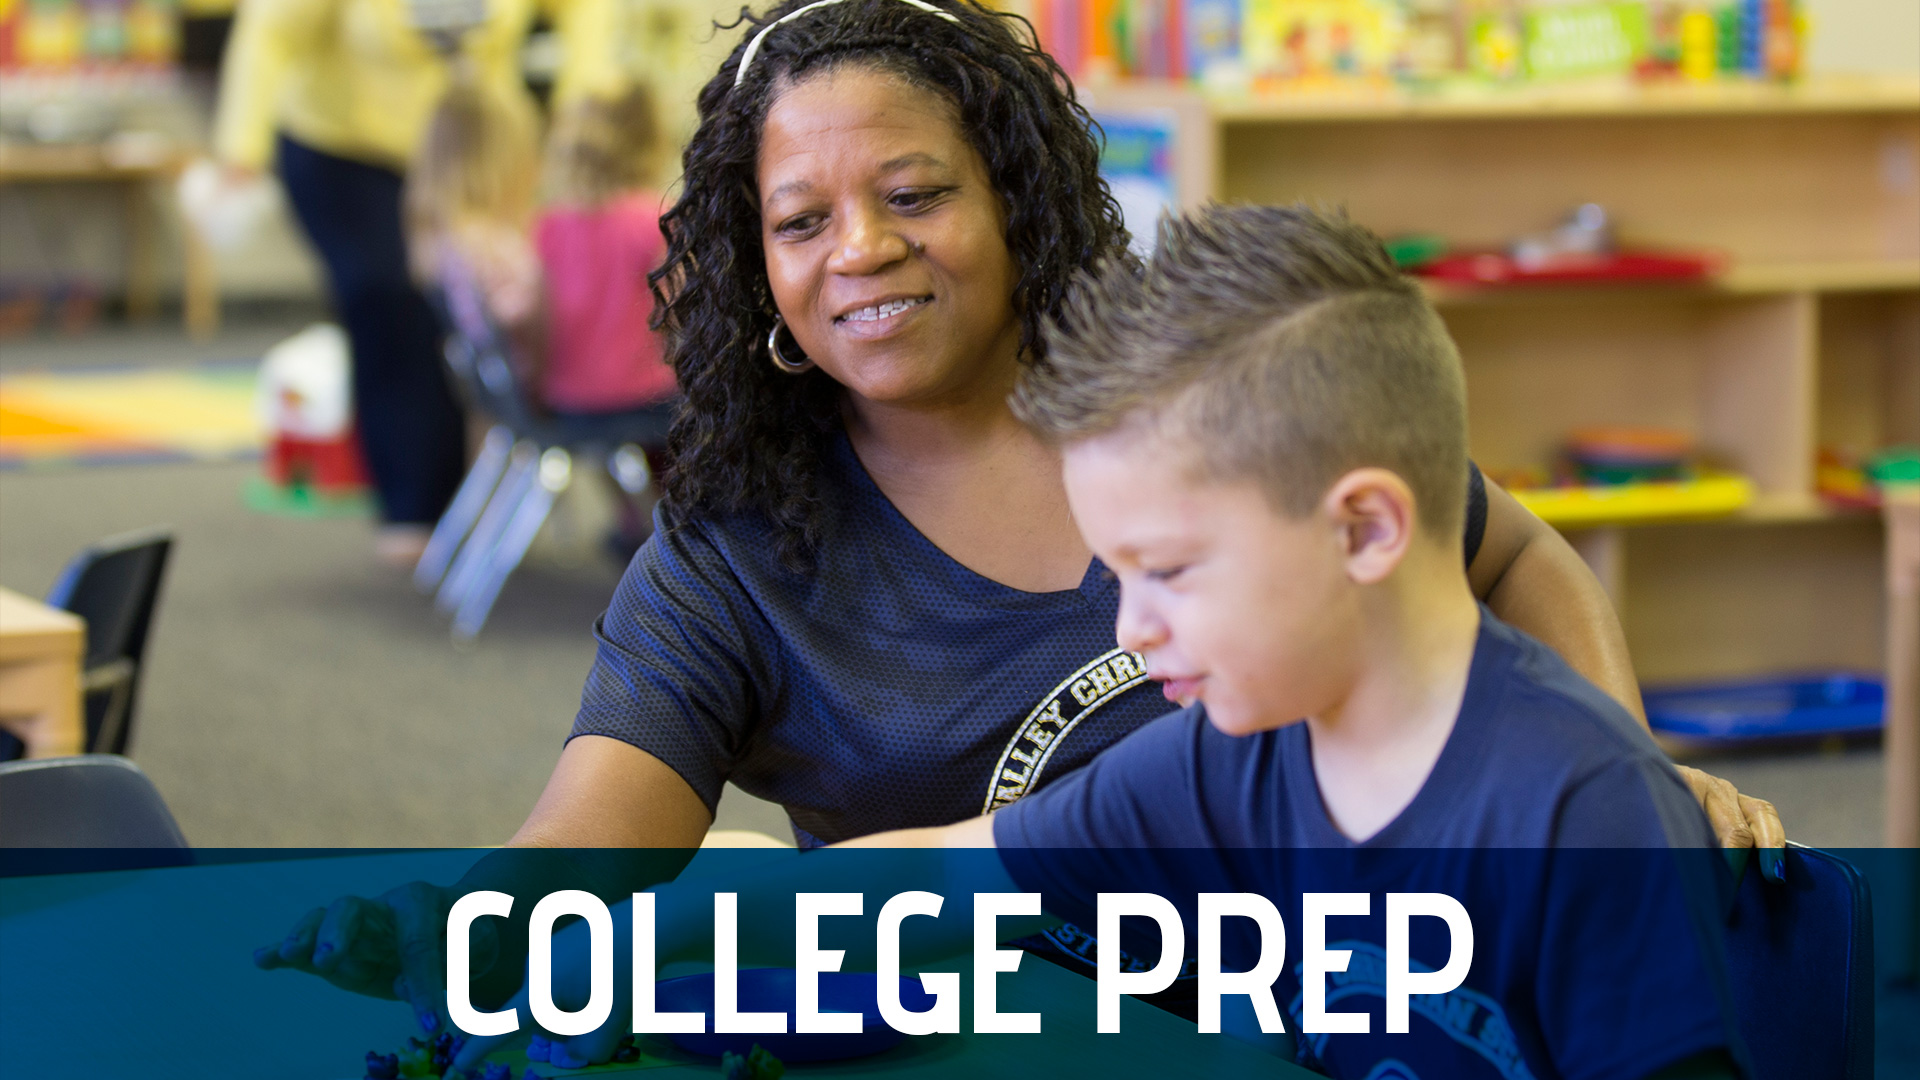 Preschool College Prep